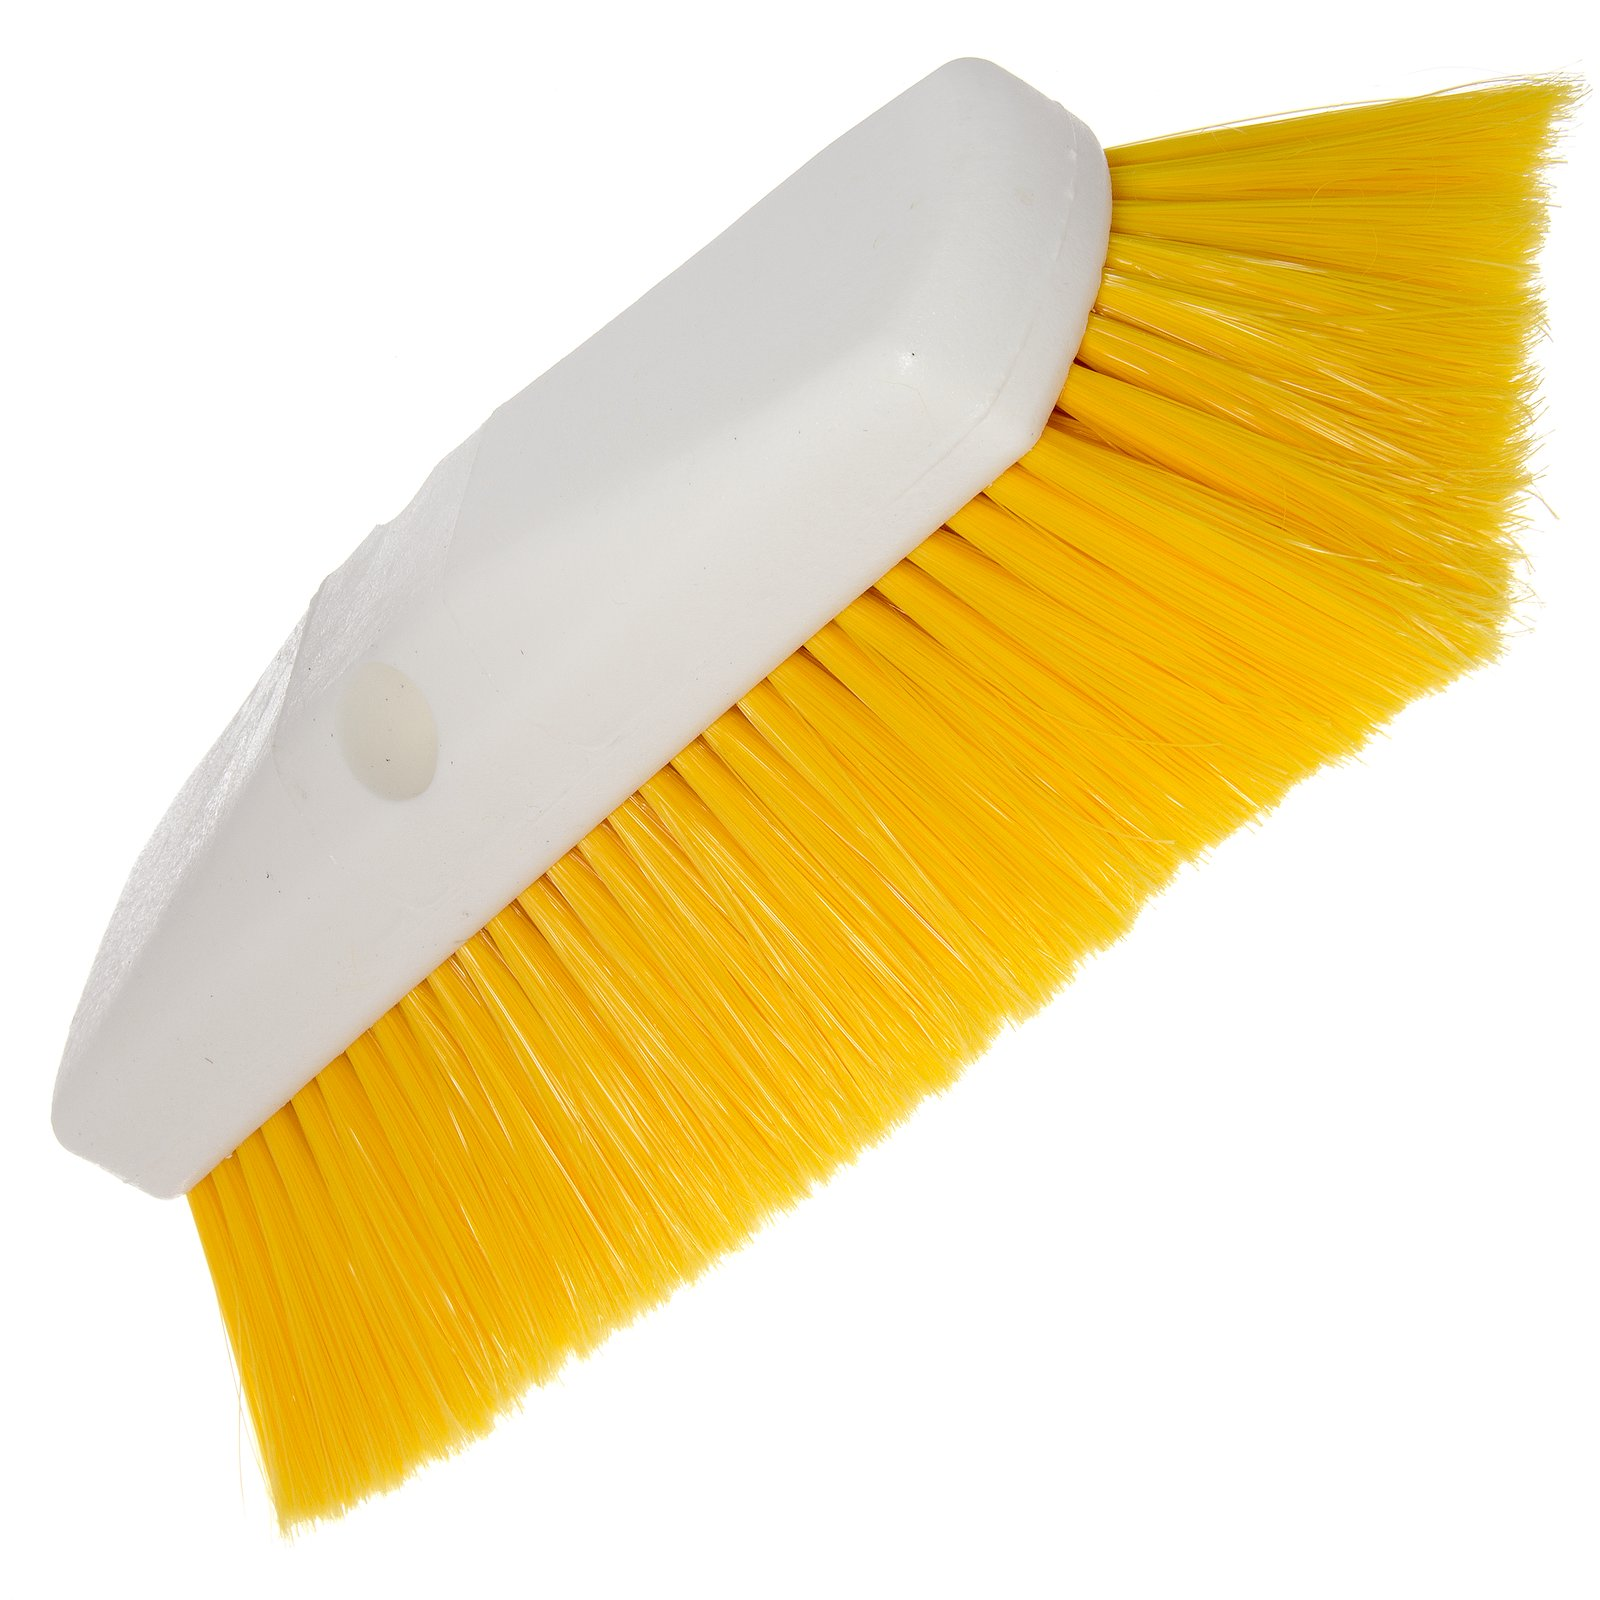 BRUSH WALL AND EQUIPMENT YELLOW 10""